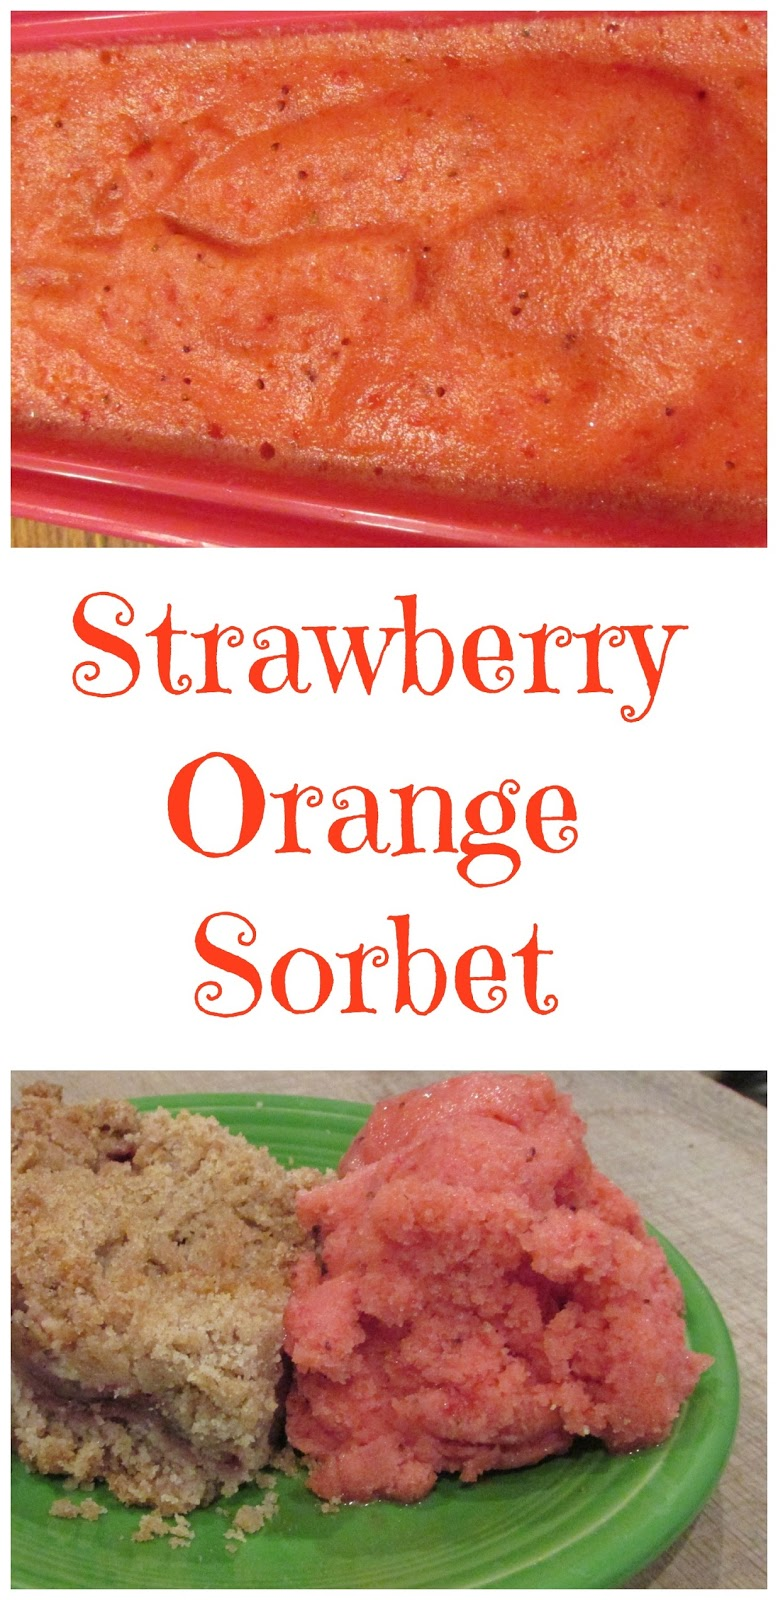 ... delicious sorbet. You won't believe how easy (or delicious) this is